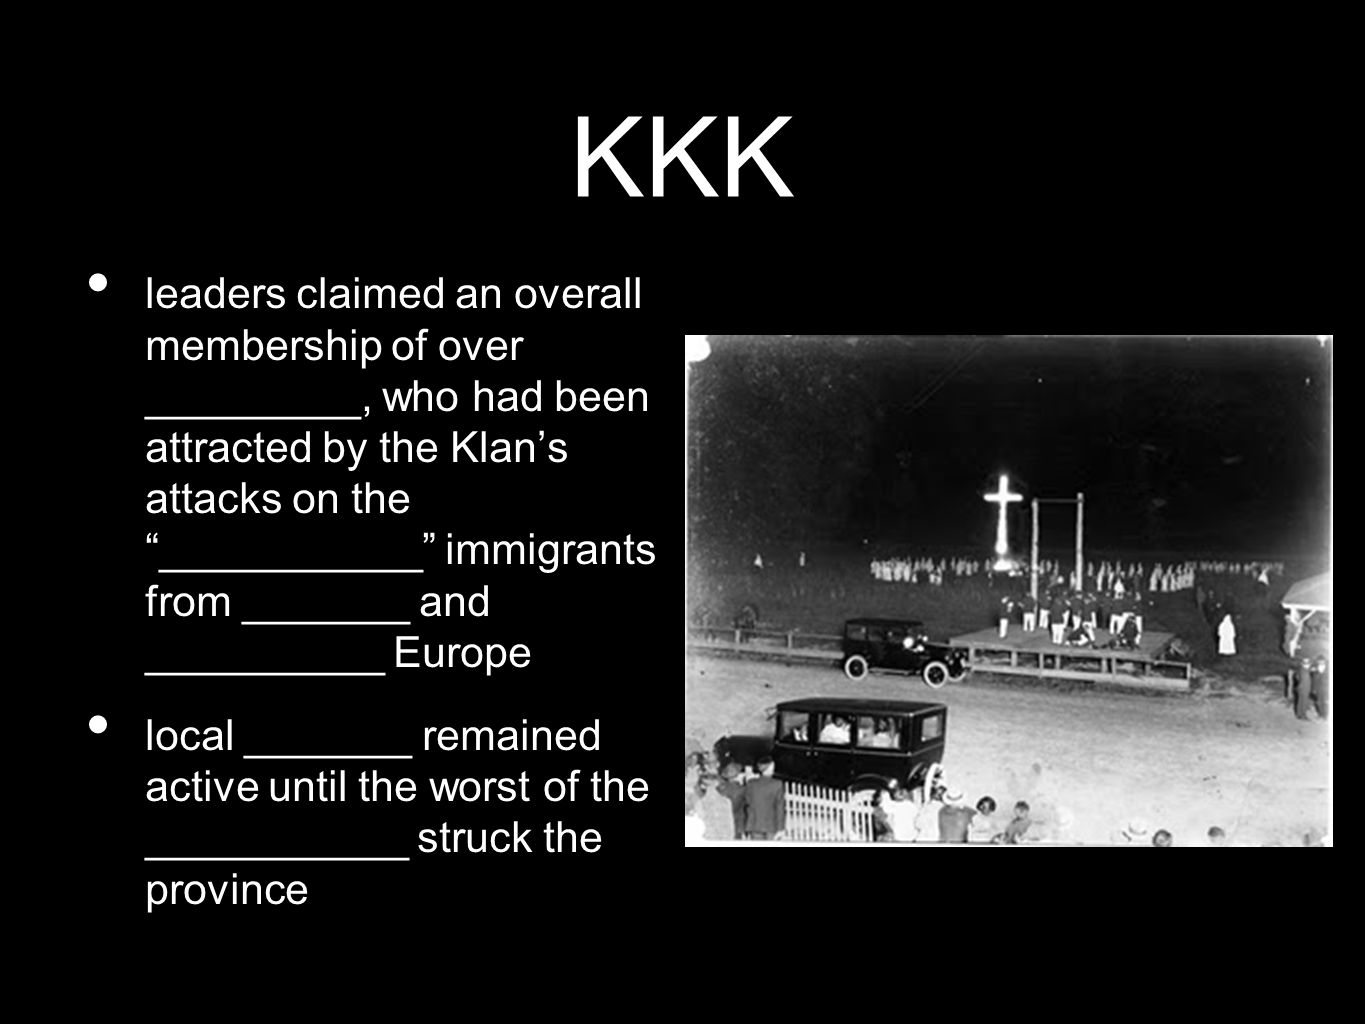 "KKK leaders claimed an overall membership of over _________, who had been attracted by the Klan's attacks on the ""___________"" immigrants from _______"